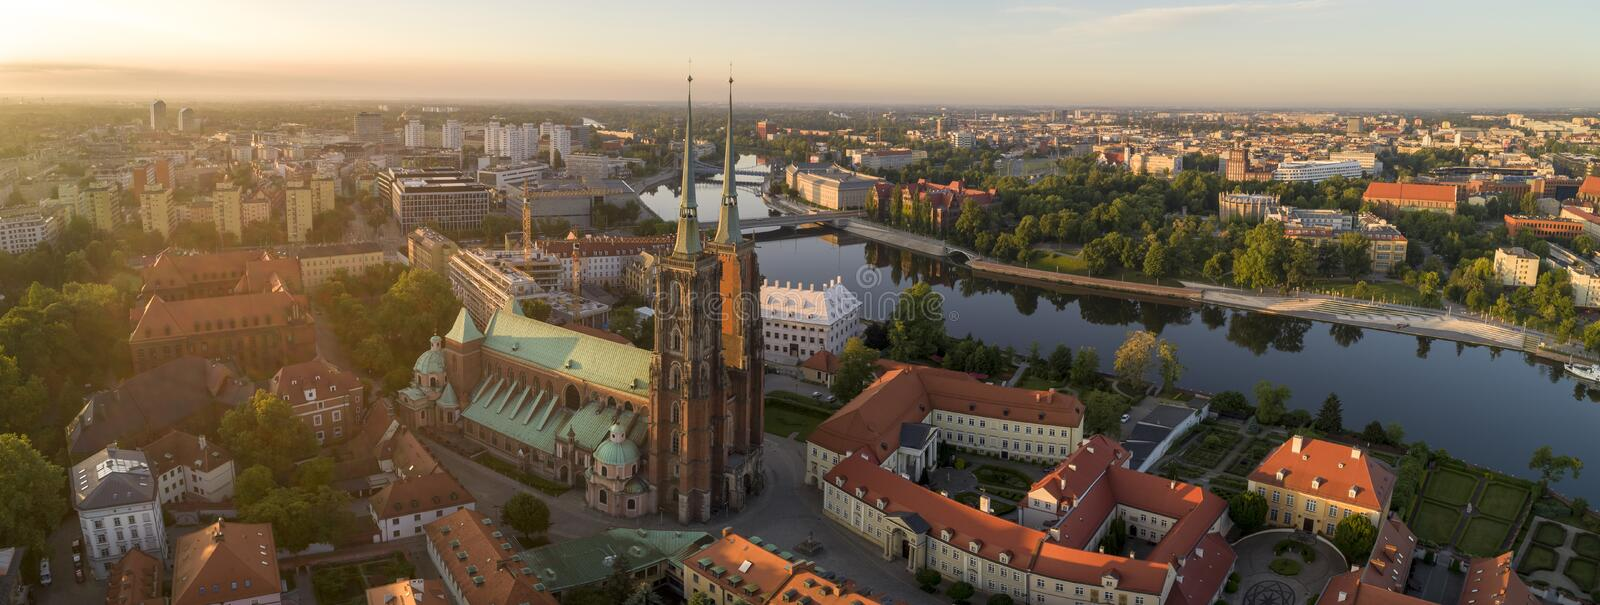 Good morning Wroclaw! Aerial view on Ostrow Tumski, river and bridges. Wroclaw, Poland stock images